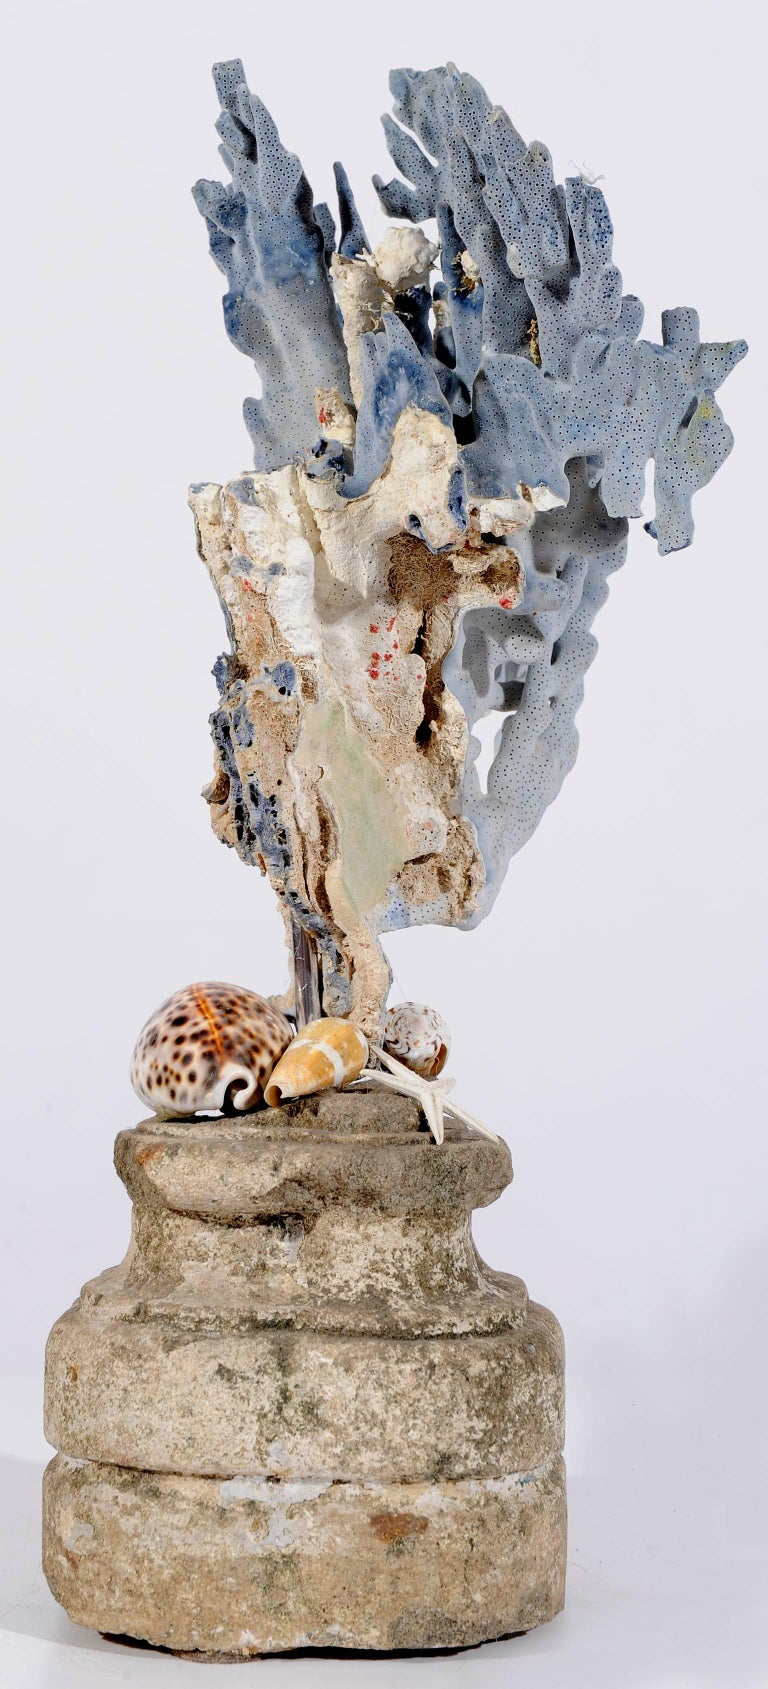 Other  Blue Coral Madrepora Natural Sculpture on a Stone Capitel For Sale